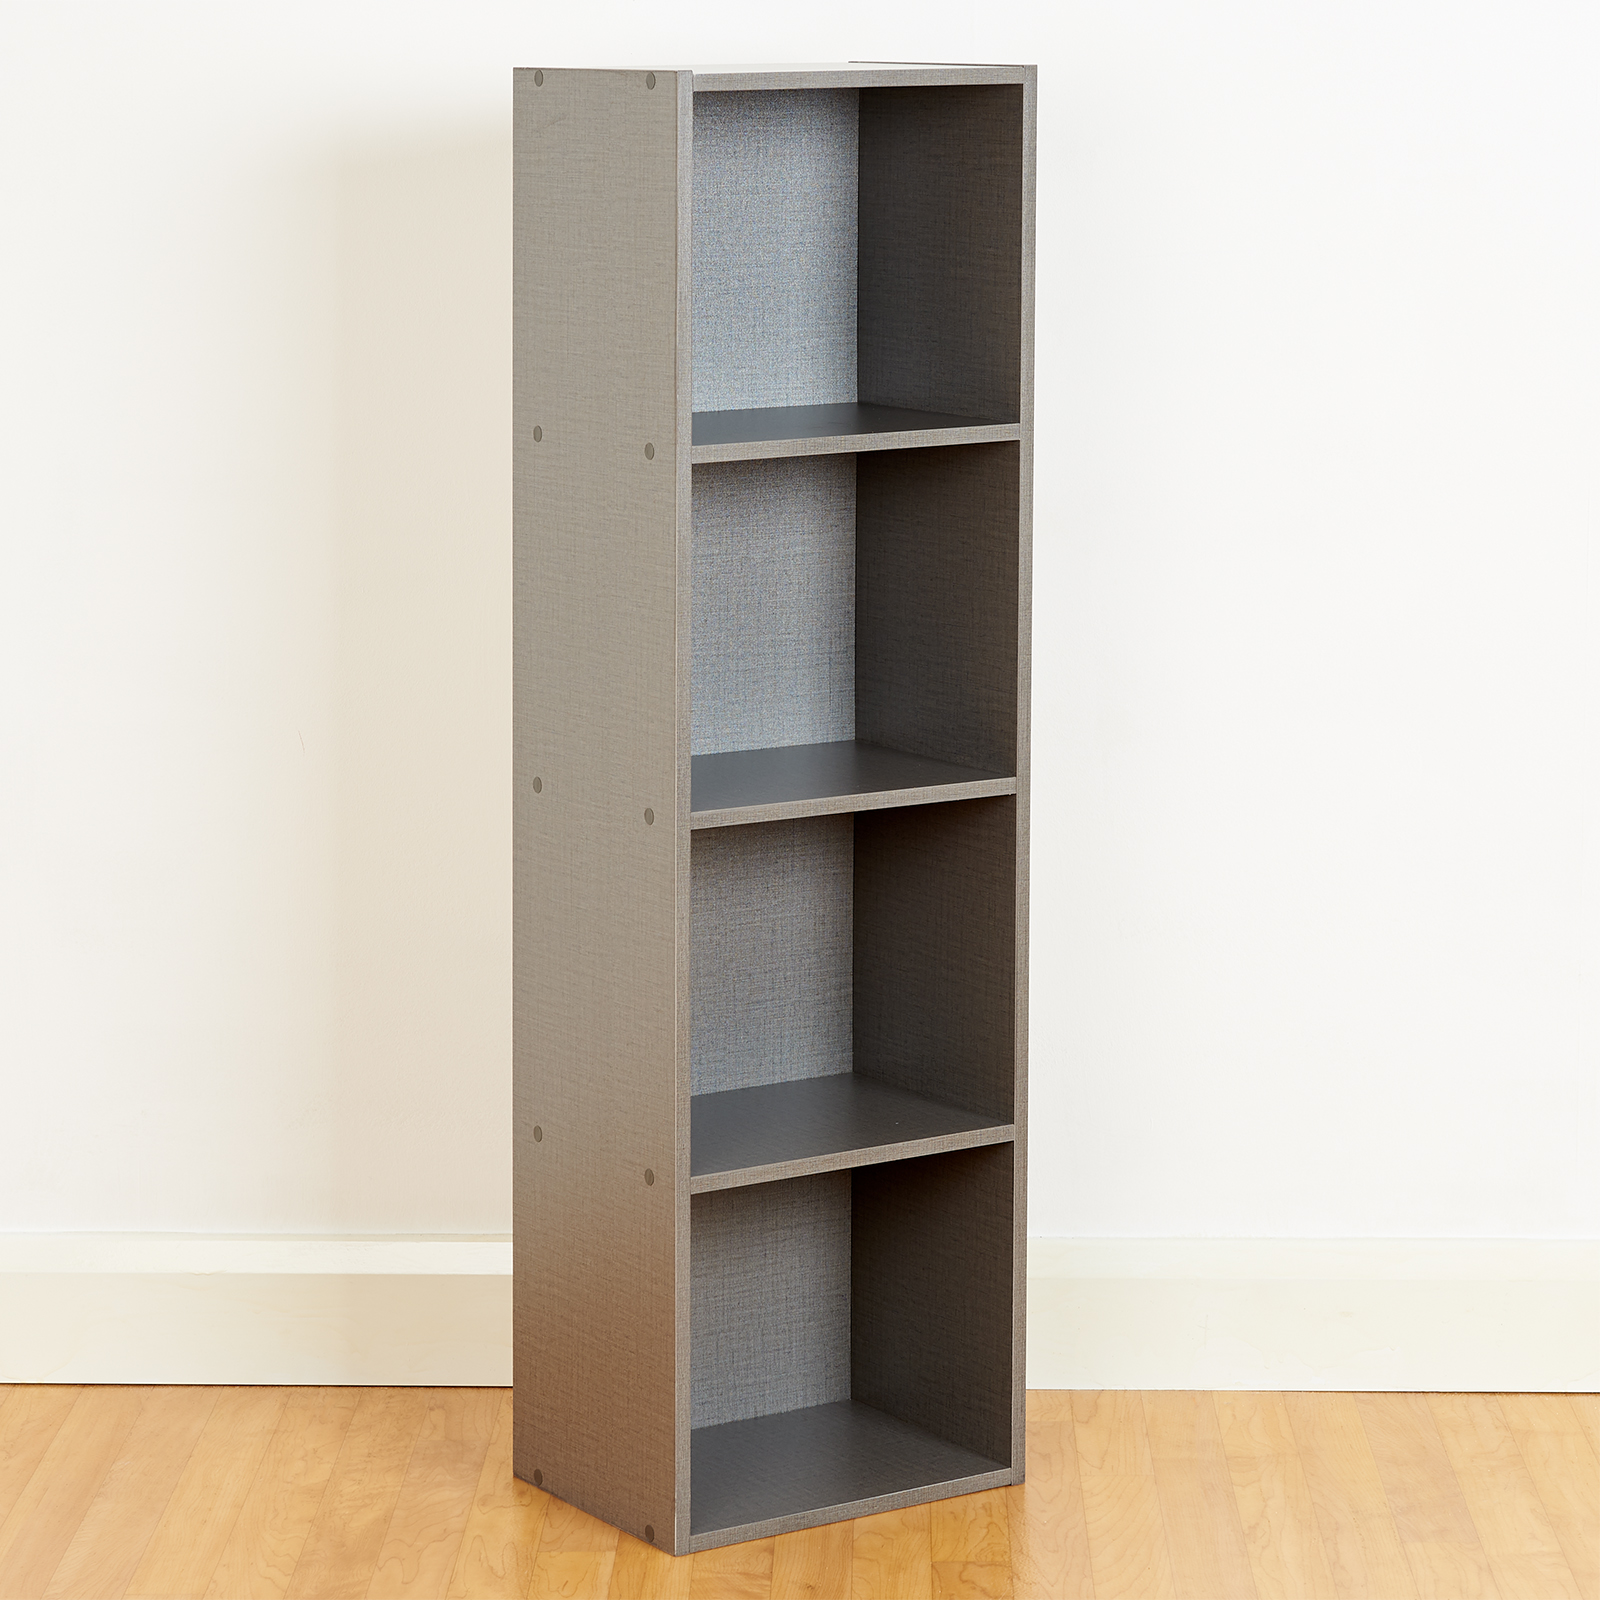 Details About 4 Tier Wooden Grey Cube Bookcase Storage Display Unit Modular  Shelving/shelves